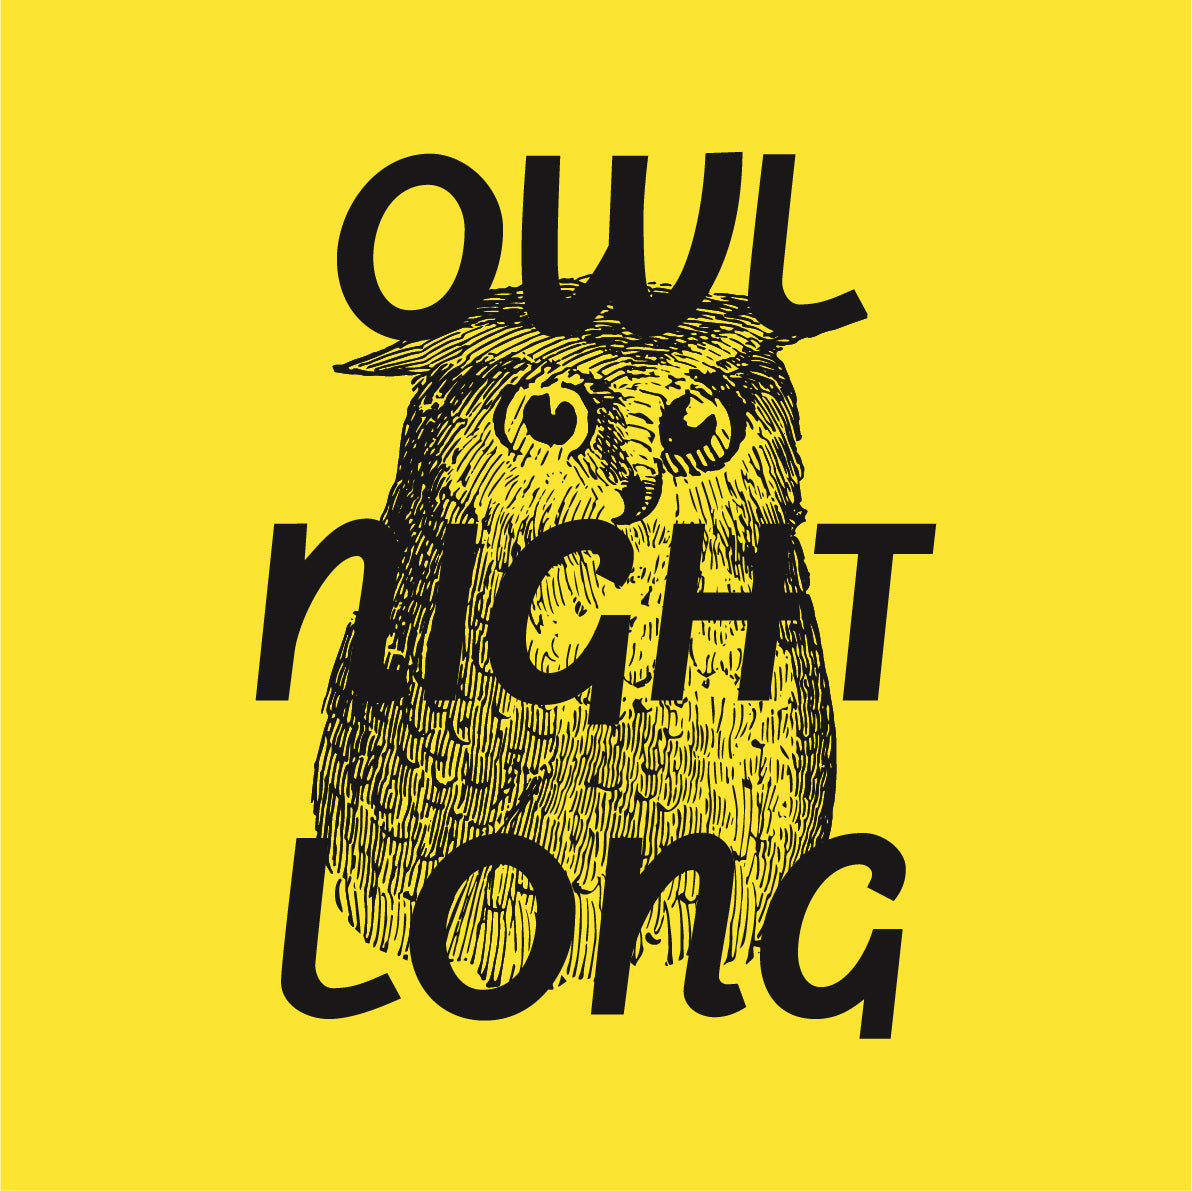 Owl Nigt Long (BOY)